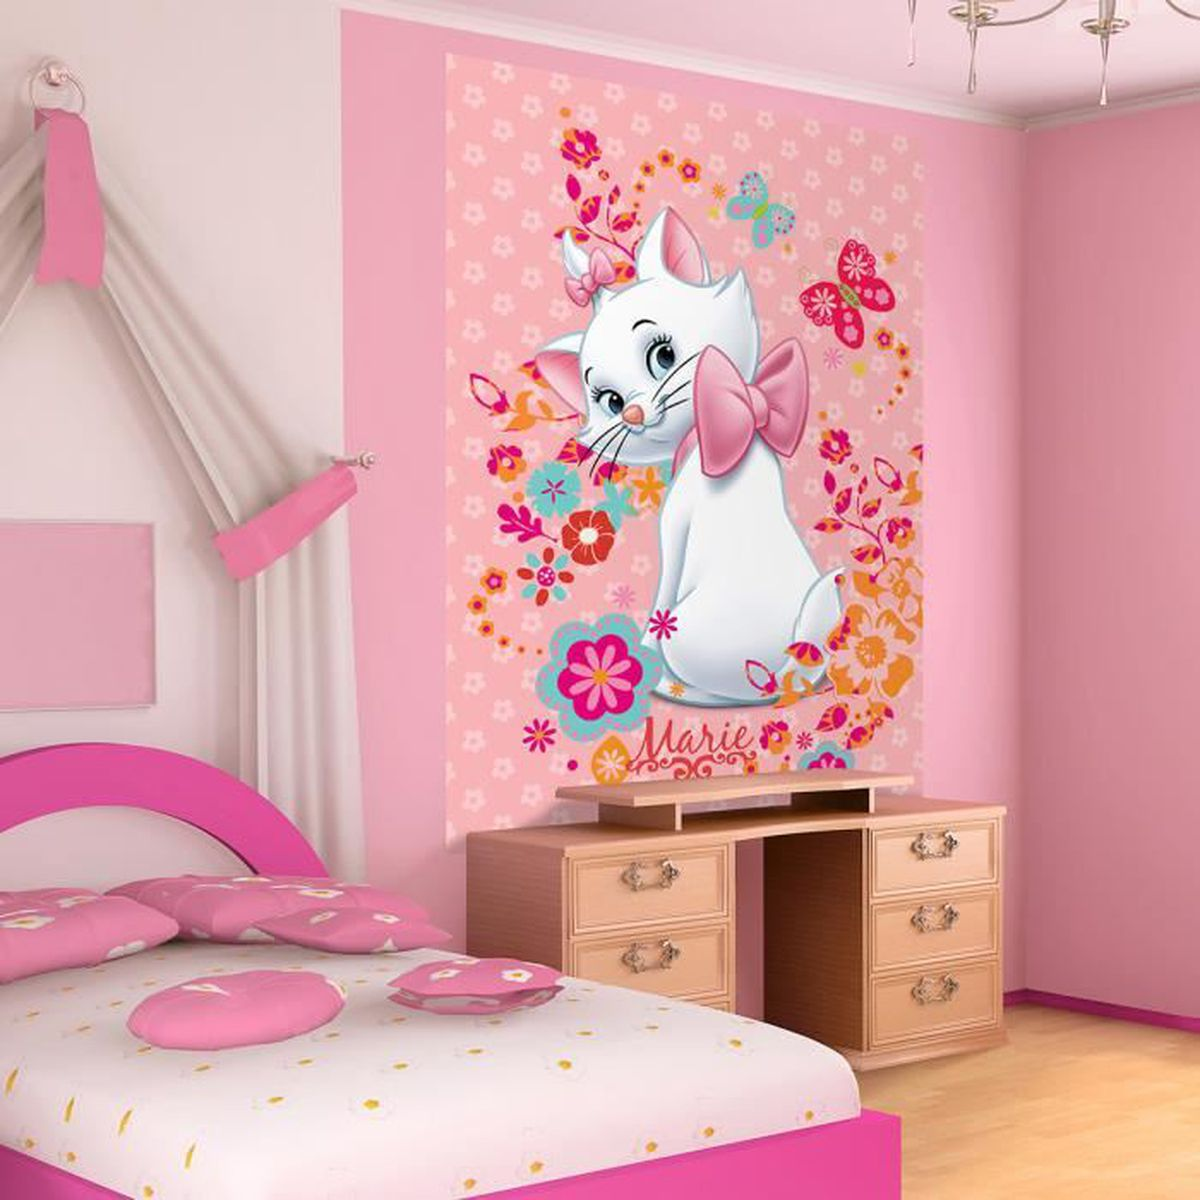 fresque murale marie 219 x 312 cm les aristochats. Black Bedroom Furniture Sets. Home Design Ideas